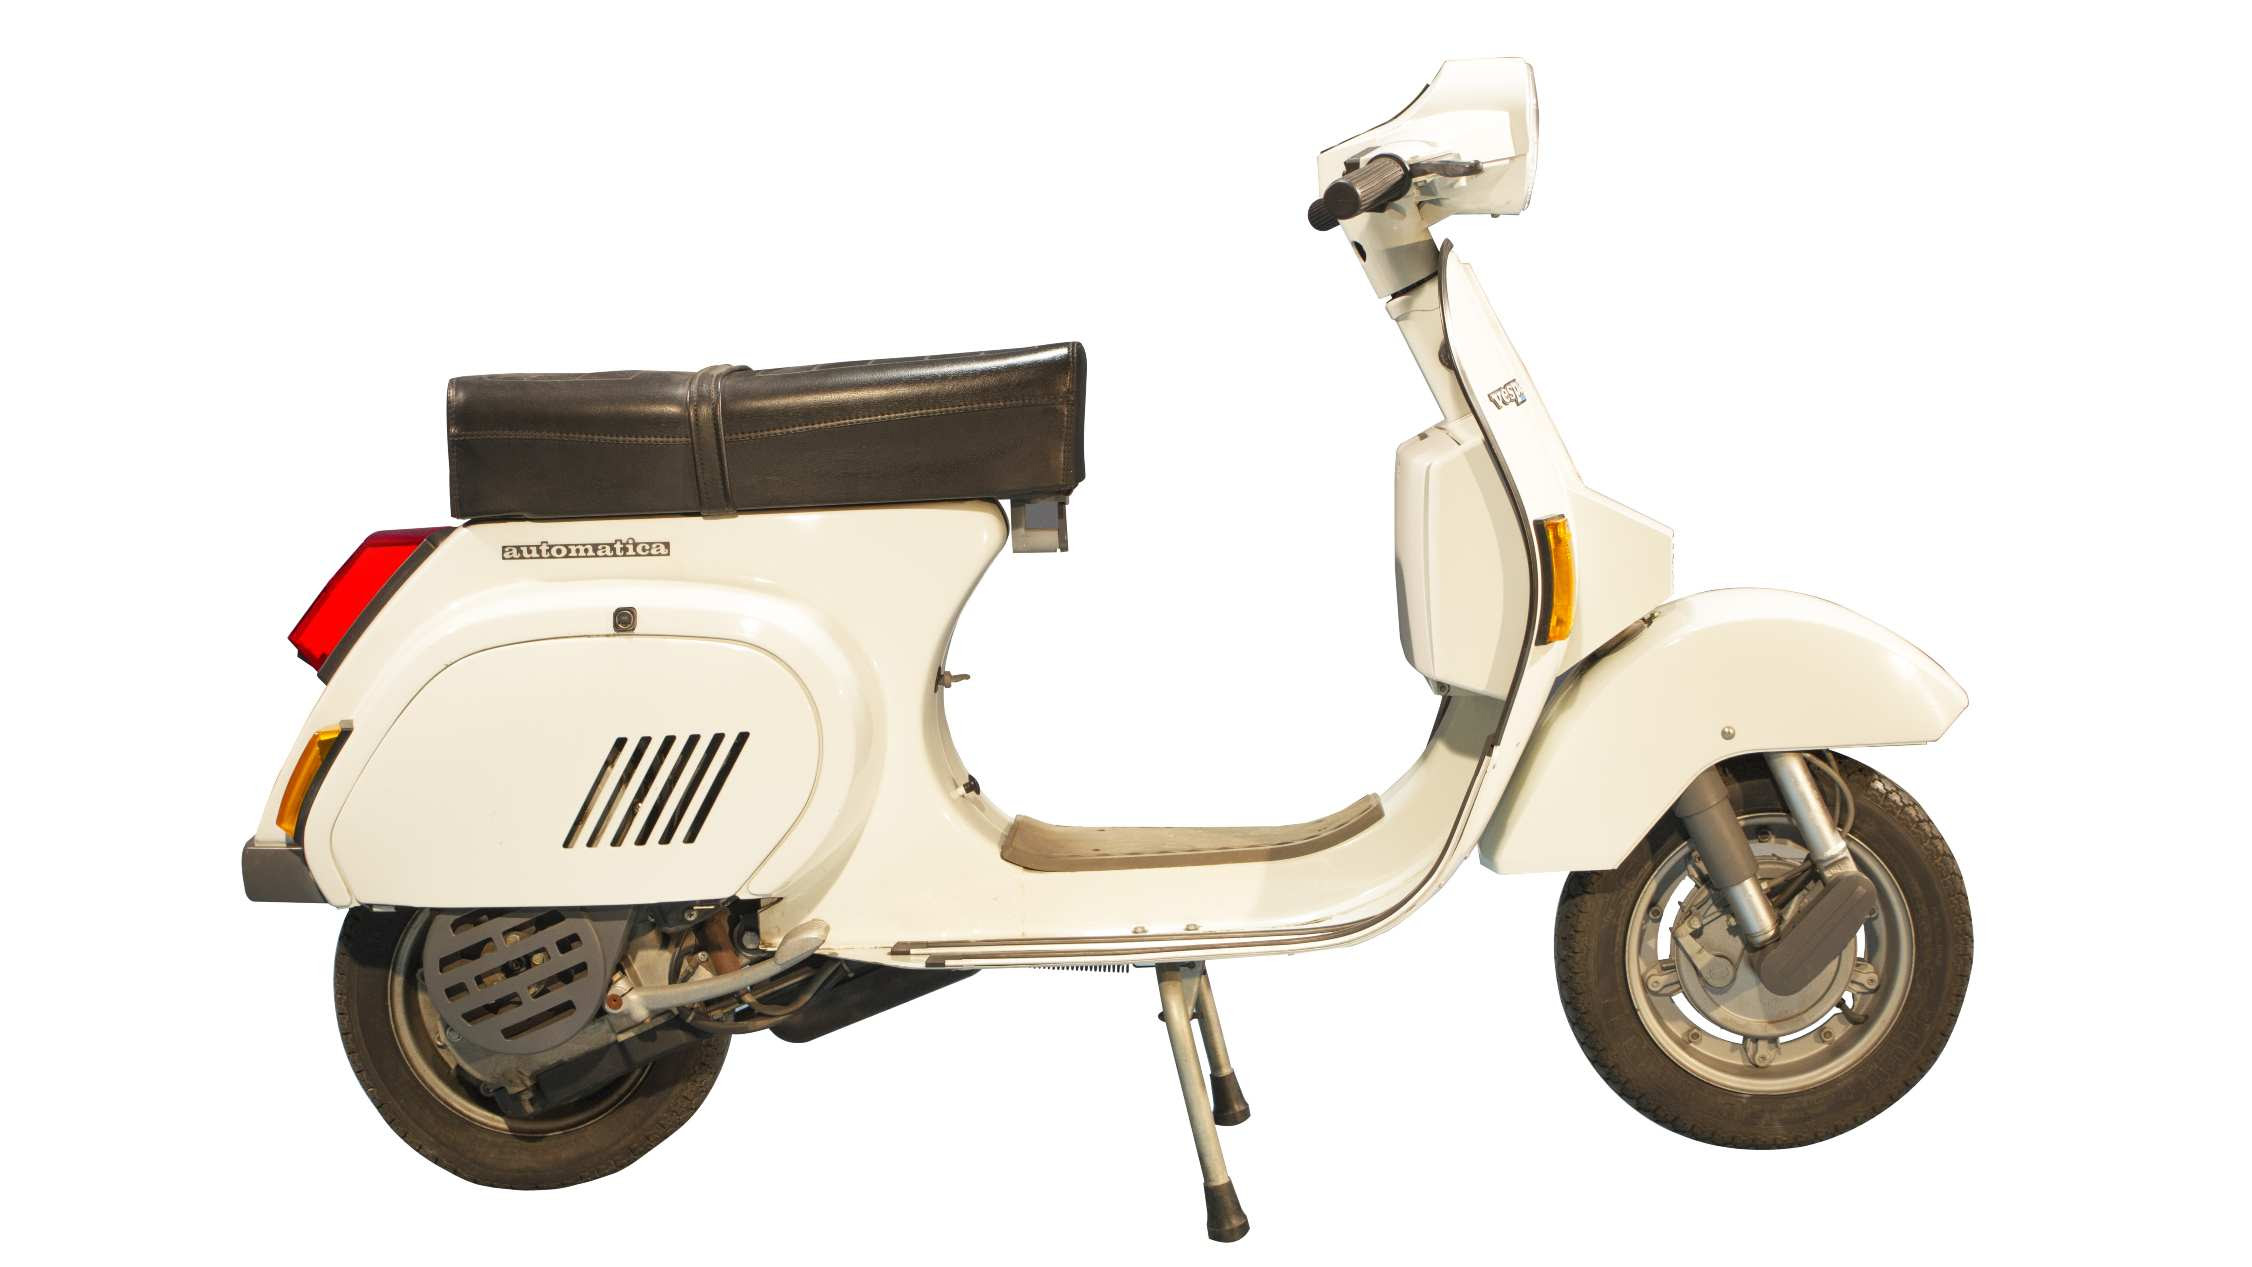 The Vespa 125 PK was the first Vespa with an automatic transmission and electric start. Image: Piaggio